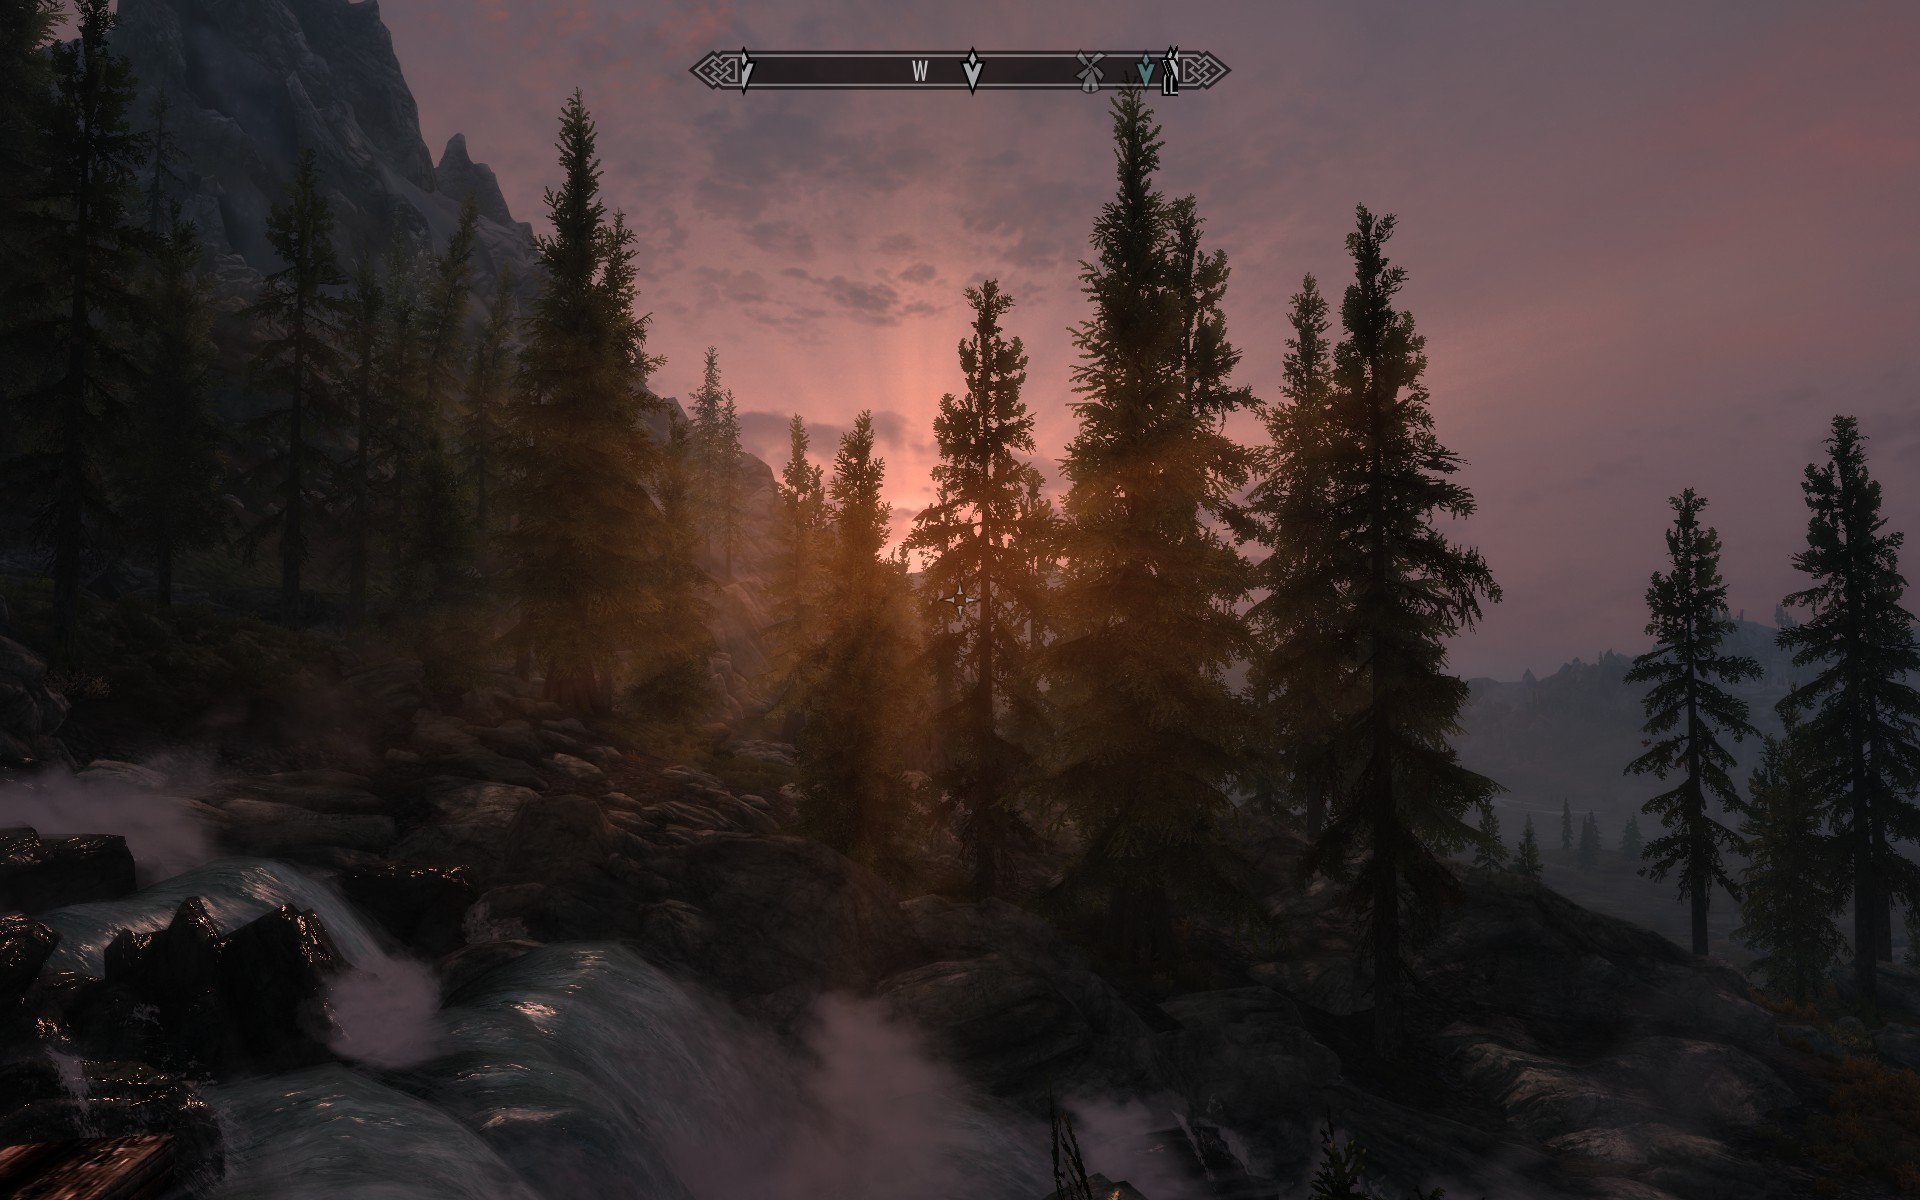 the realistic lighting custom configuration by redguard216 at skyrim